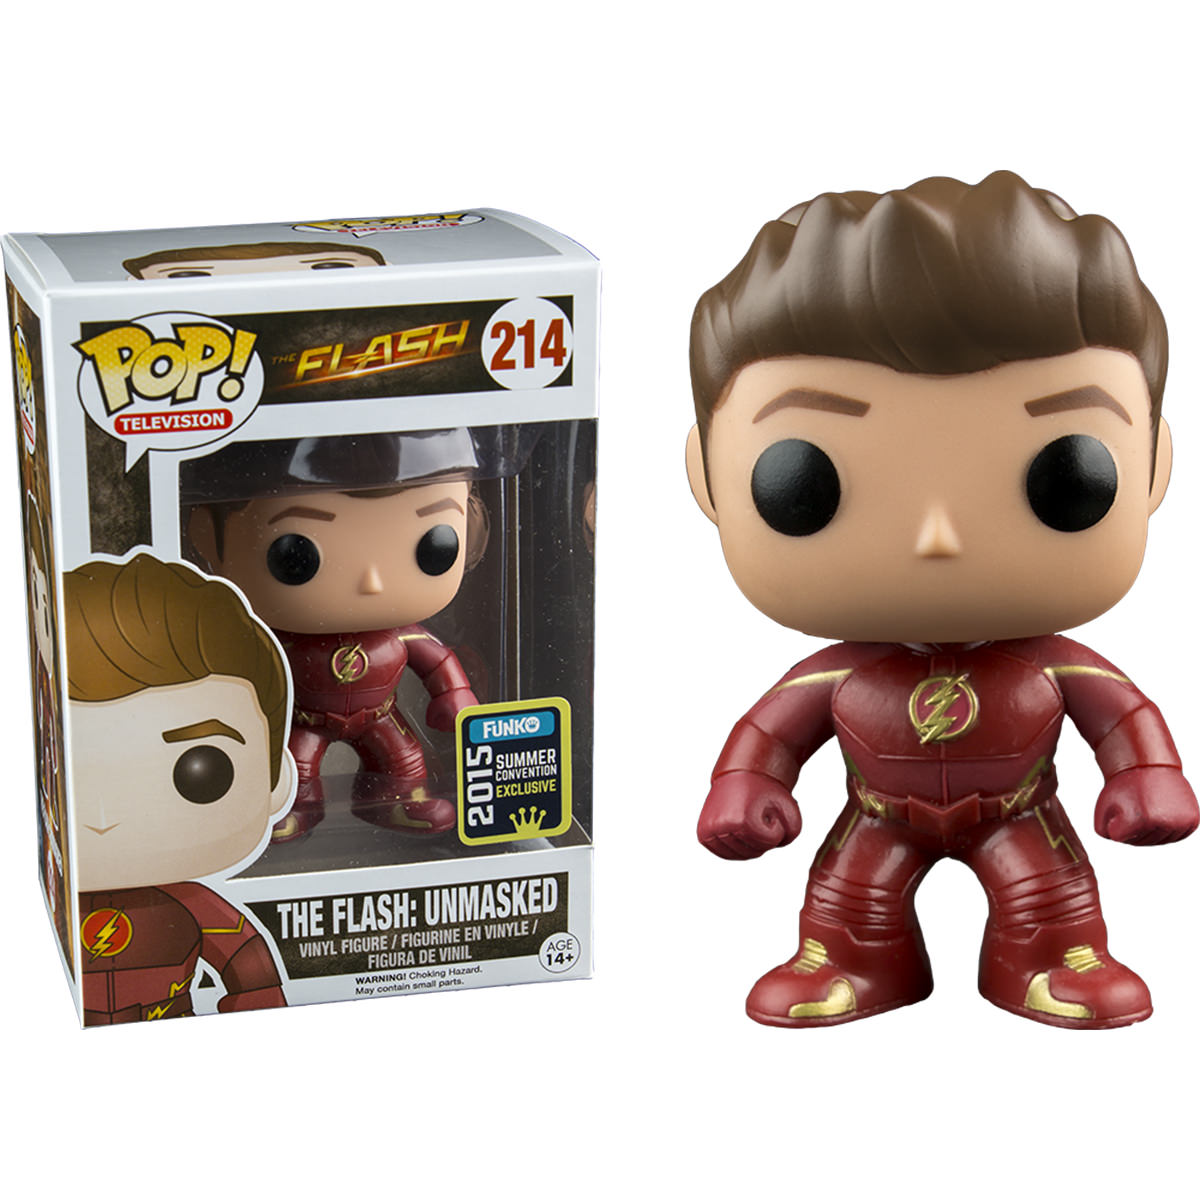 THE FLASH TV SERIES - THE FLASH RUNNING - FUNKO POP! …